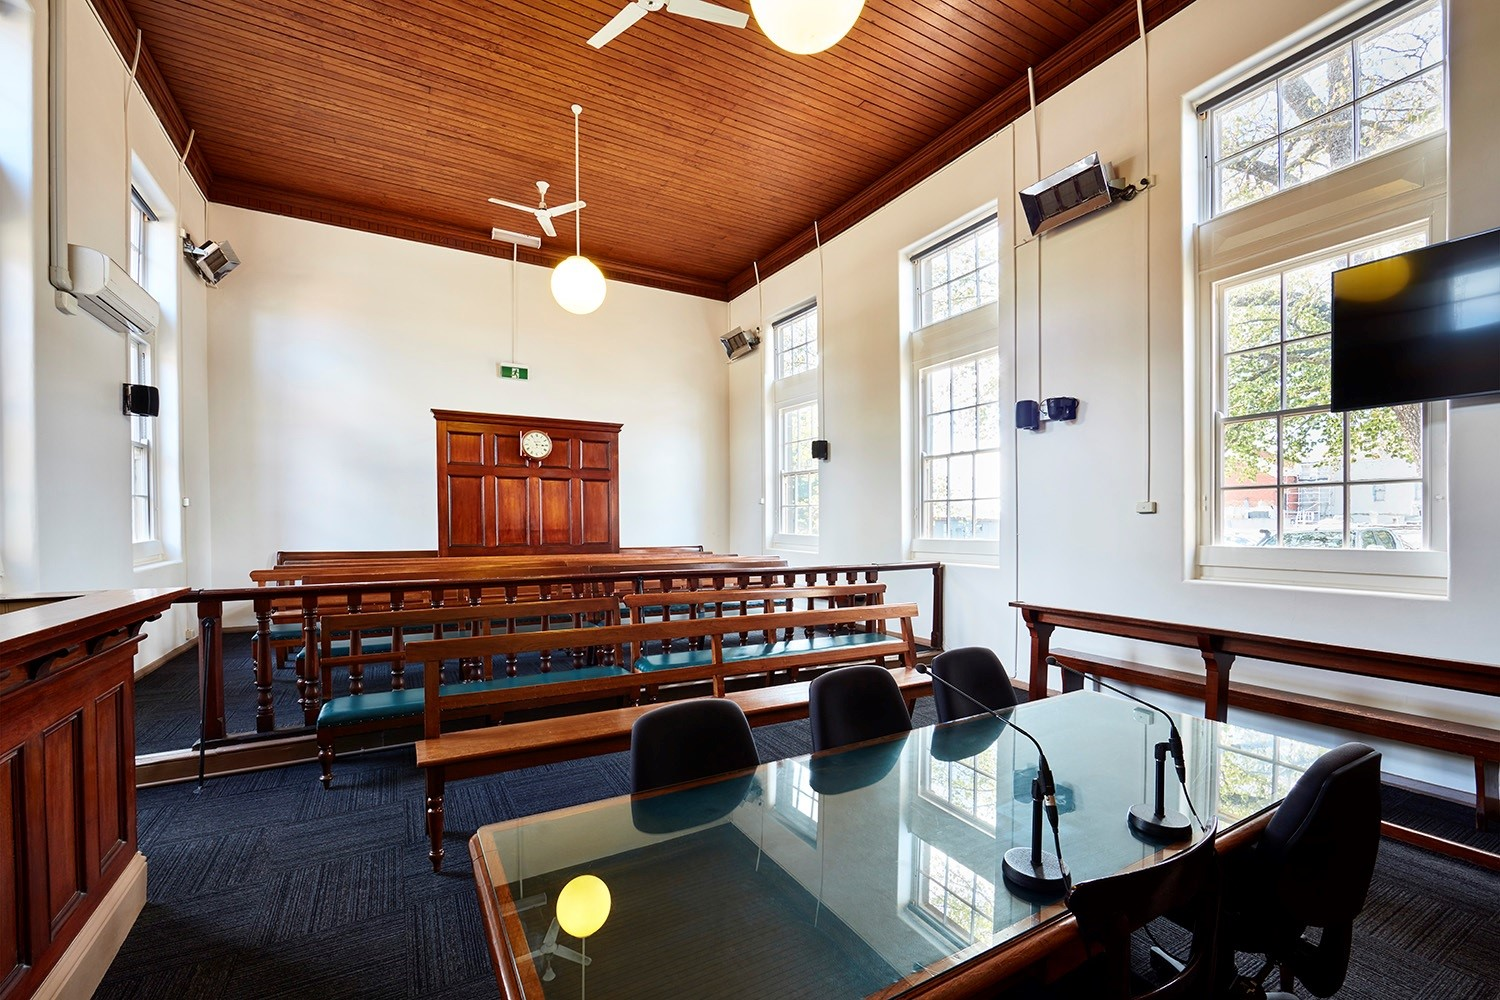 Courtroom inside KynetonMagistrates' Court